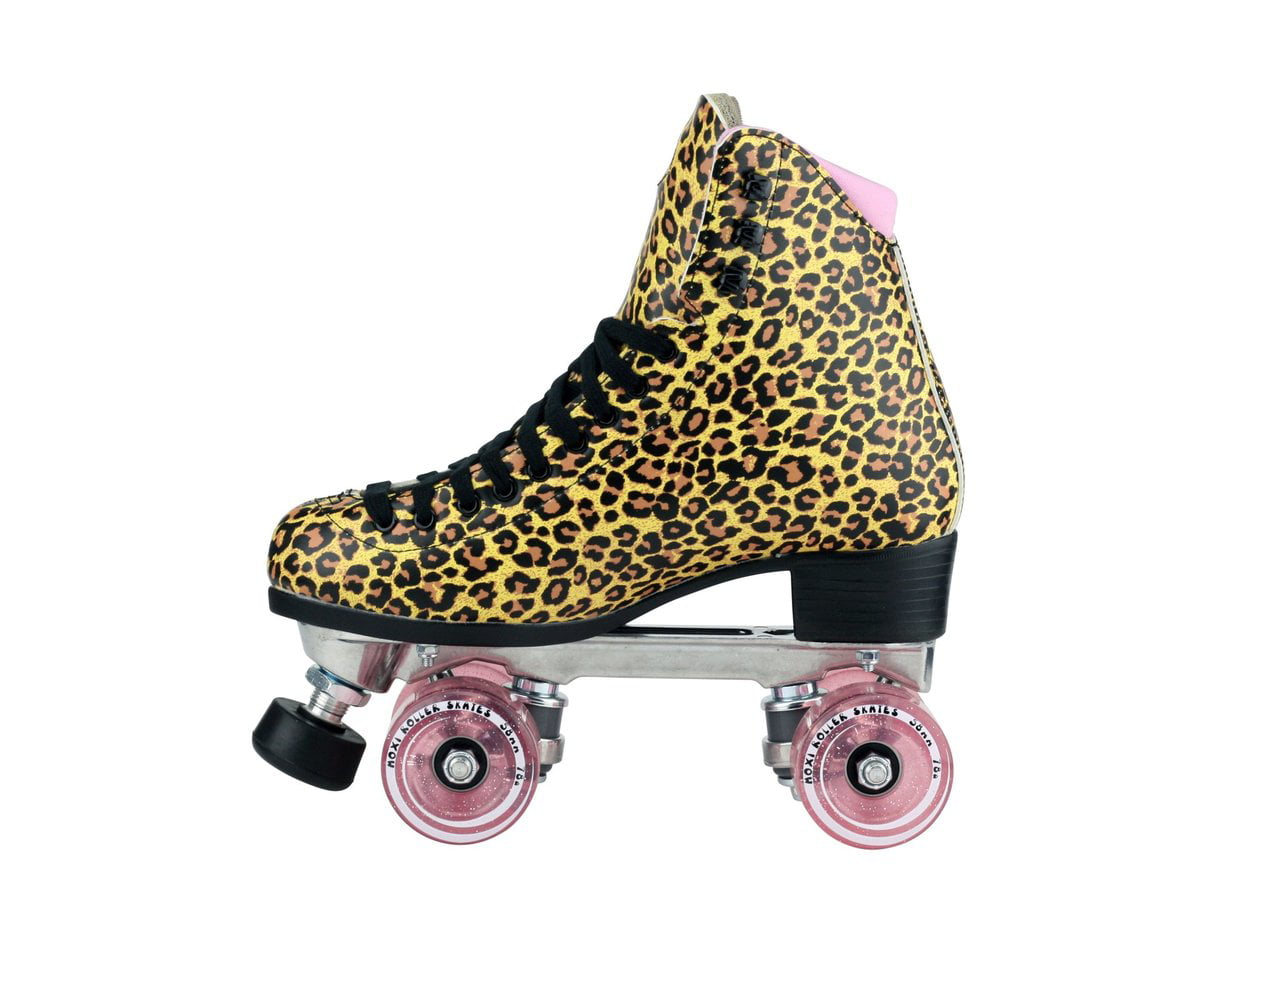 Riedell Quad Roller Skates Jungle Leopard by